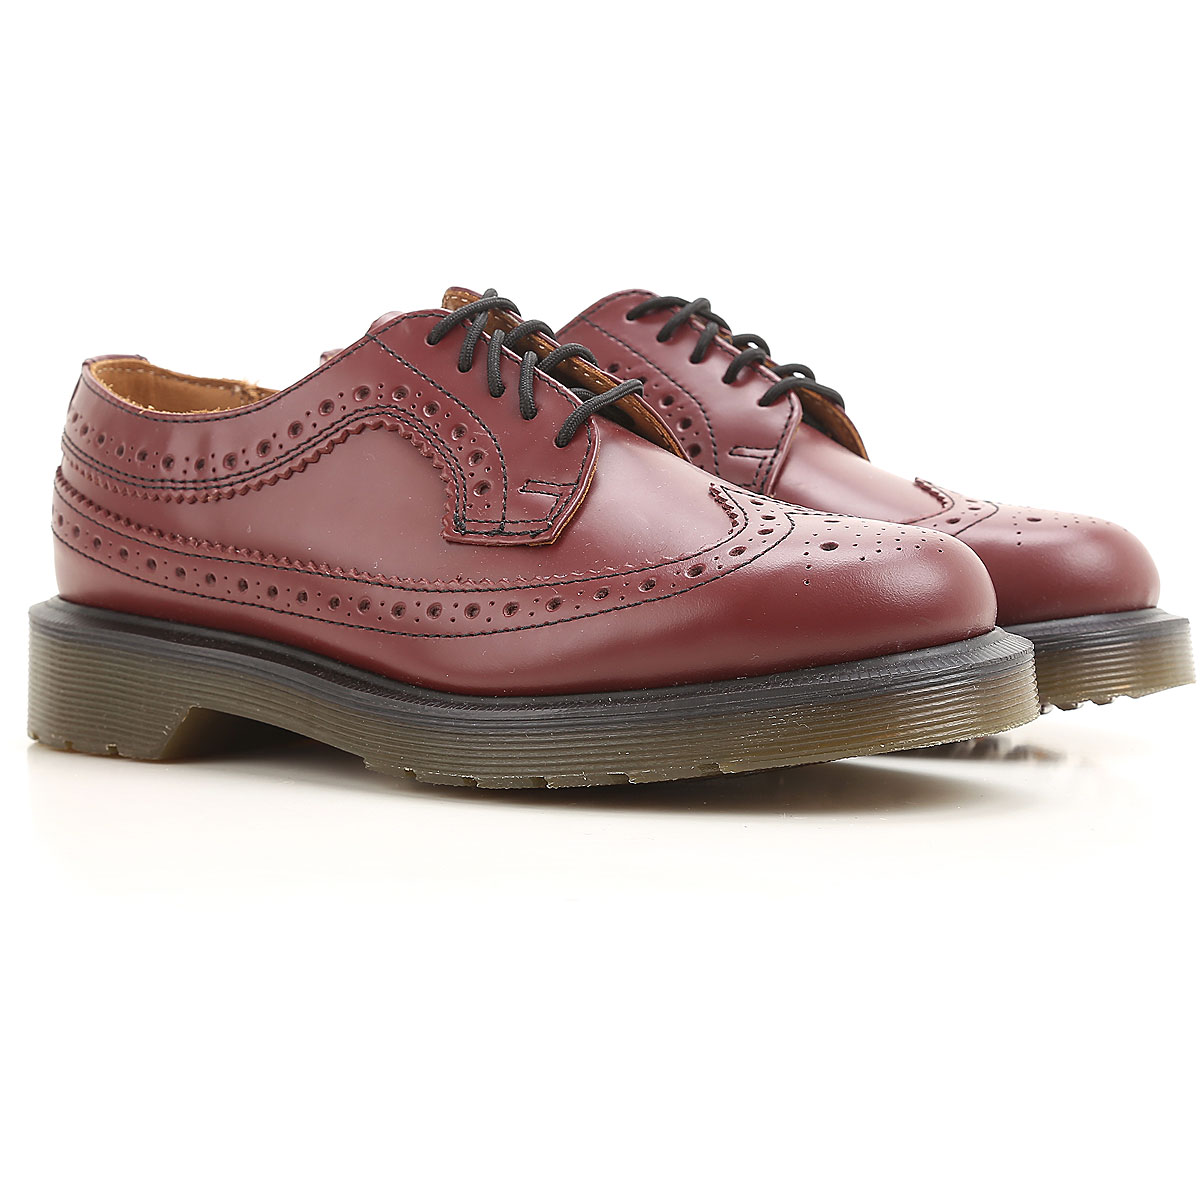 Image of Dr. Martens Brogues Oxford Shoes On Sale in Outlet, Cherry Red, Leather, 2017, US 5 - UK 3 - EU 36 US 8 - UK 6 - EU 39